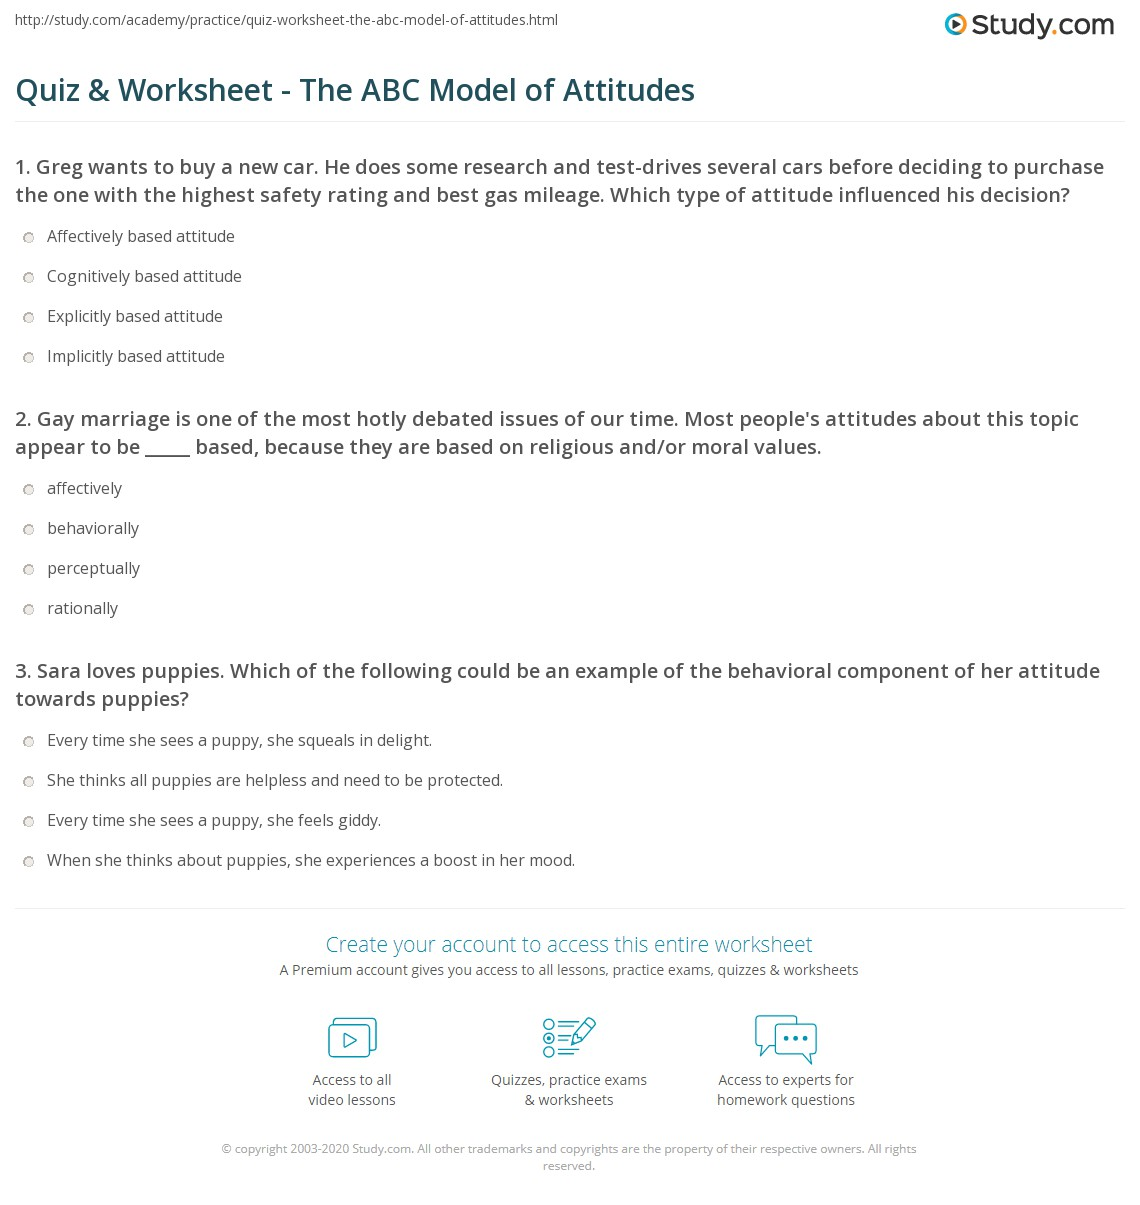 Worksheets Behavior Of Gases Worksheet quiz worksheet the abc model of attitudes study com 1 gay marriage is one most hotly debated issues our time peoples about this topic appear to be based becau